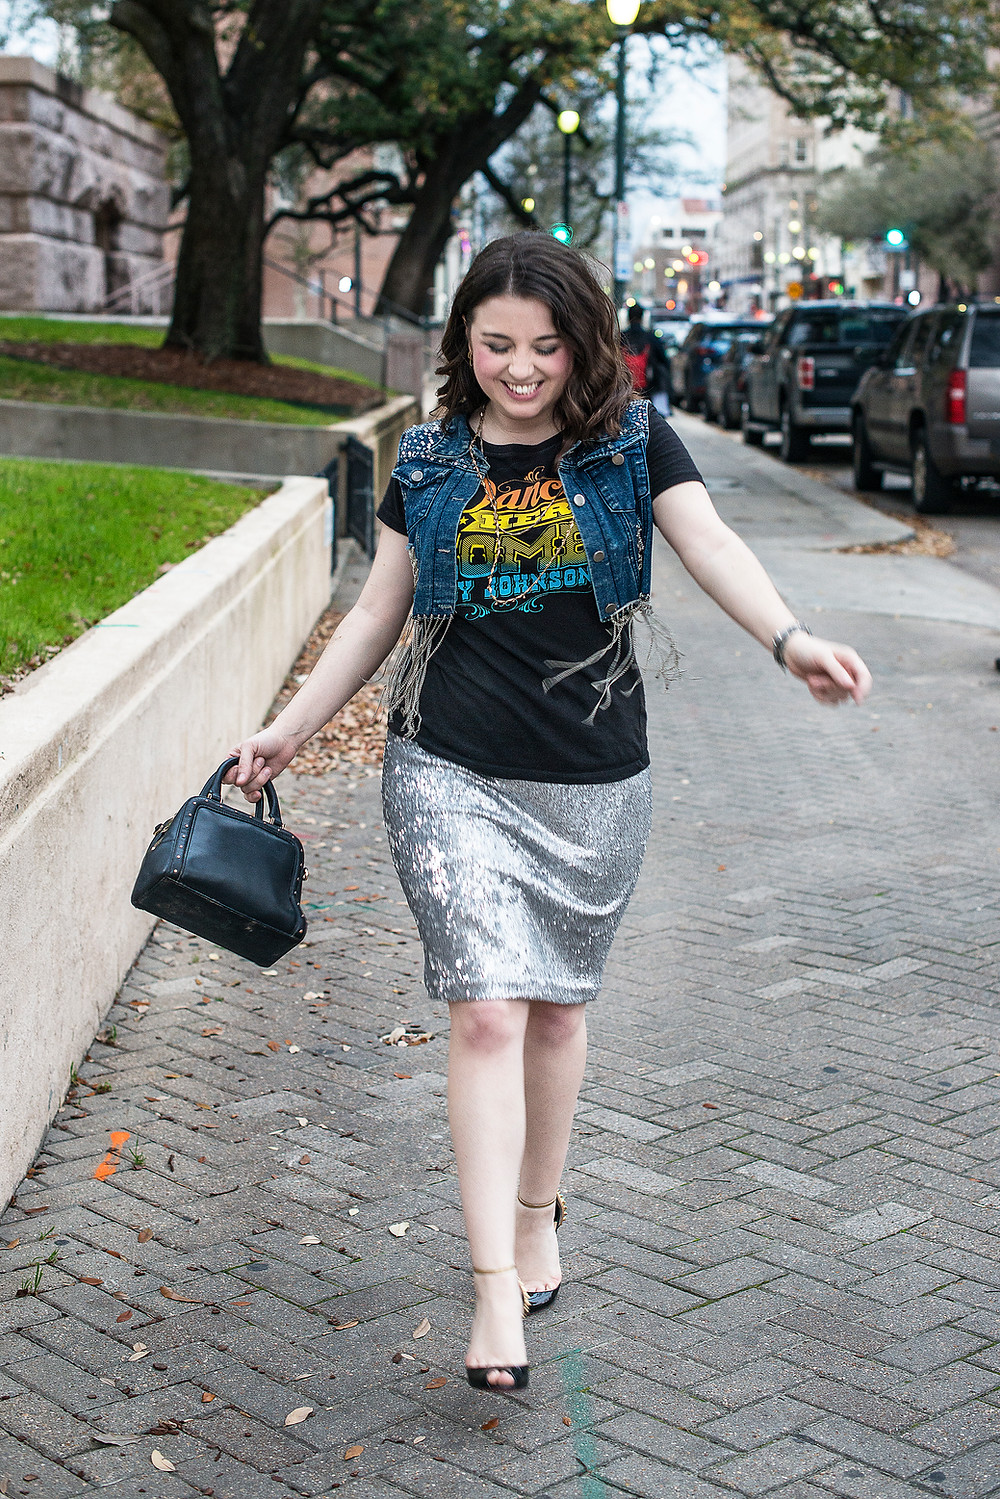 Personal Stylist in Houston pairs a graphic tee with a funky vest